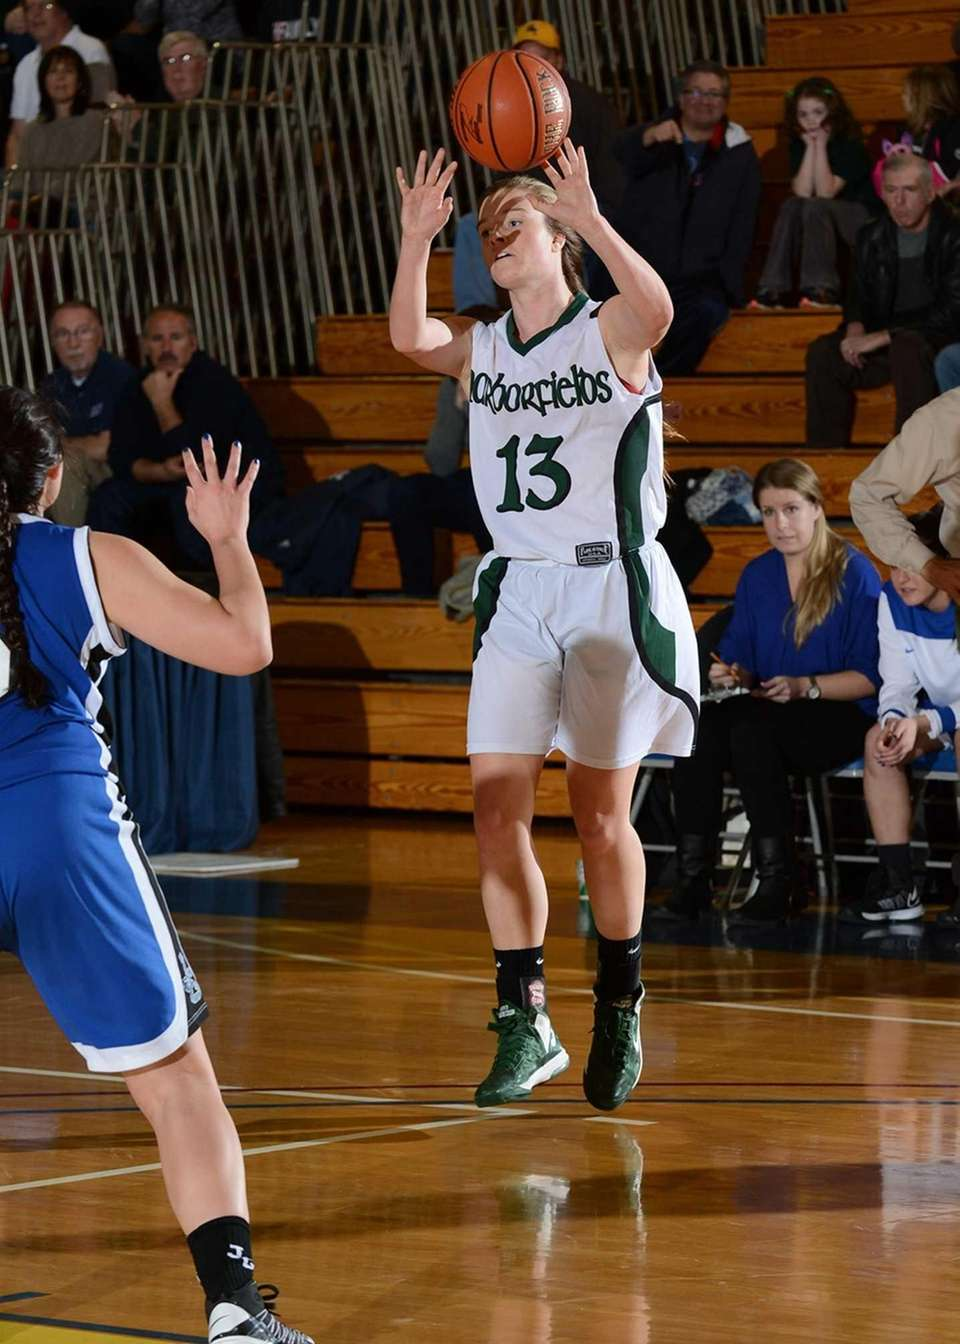 Harborfields' Amy Werbitsky goes up for a jump